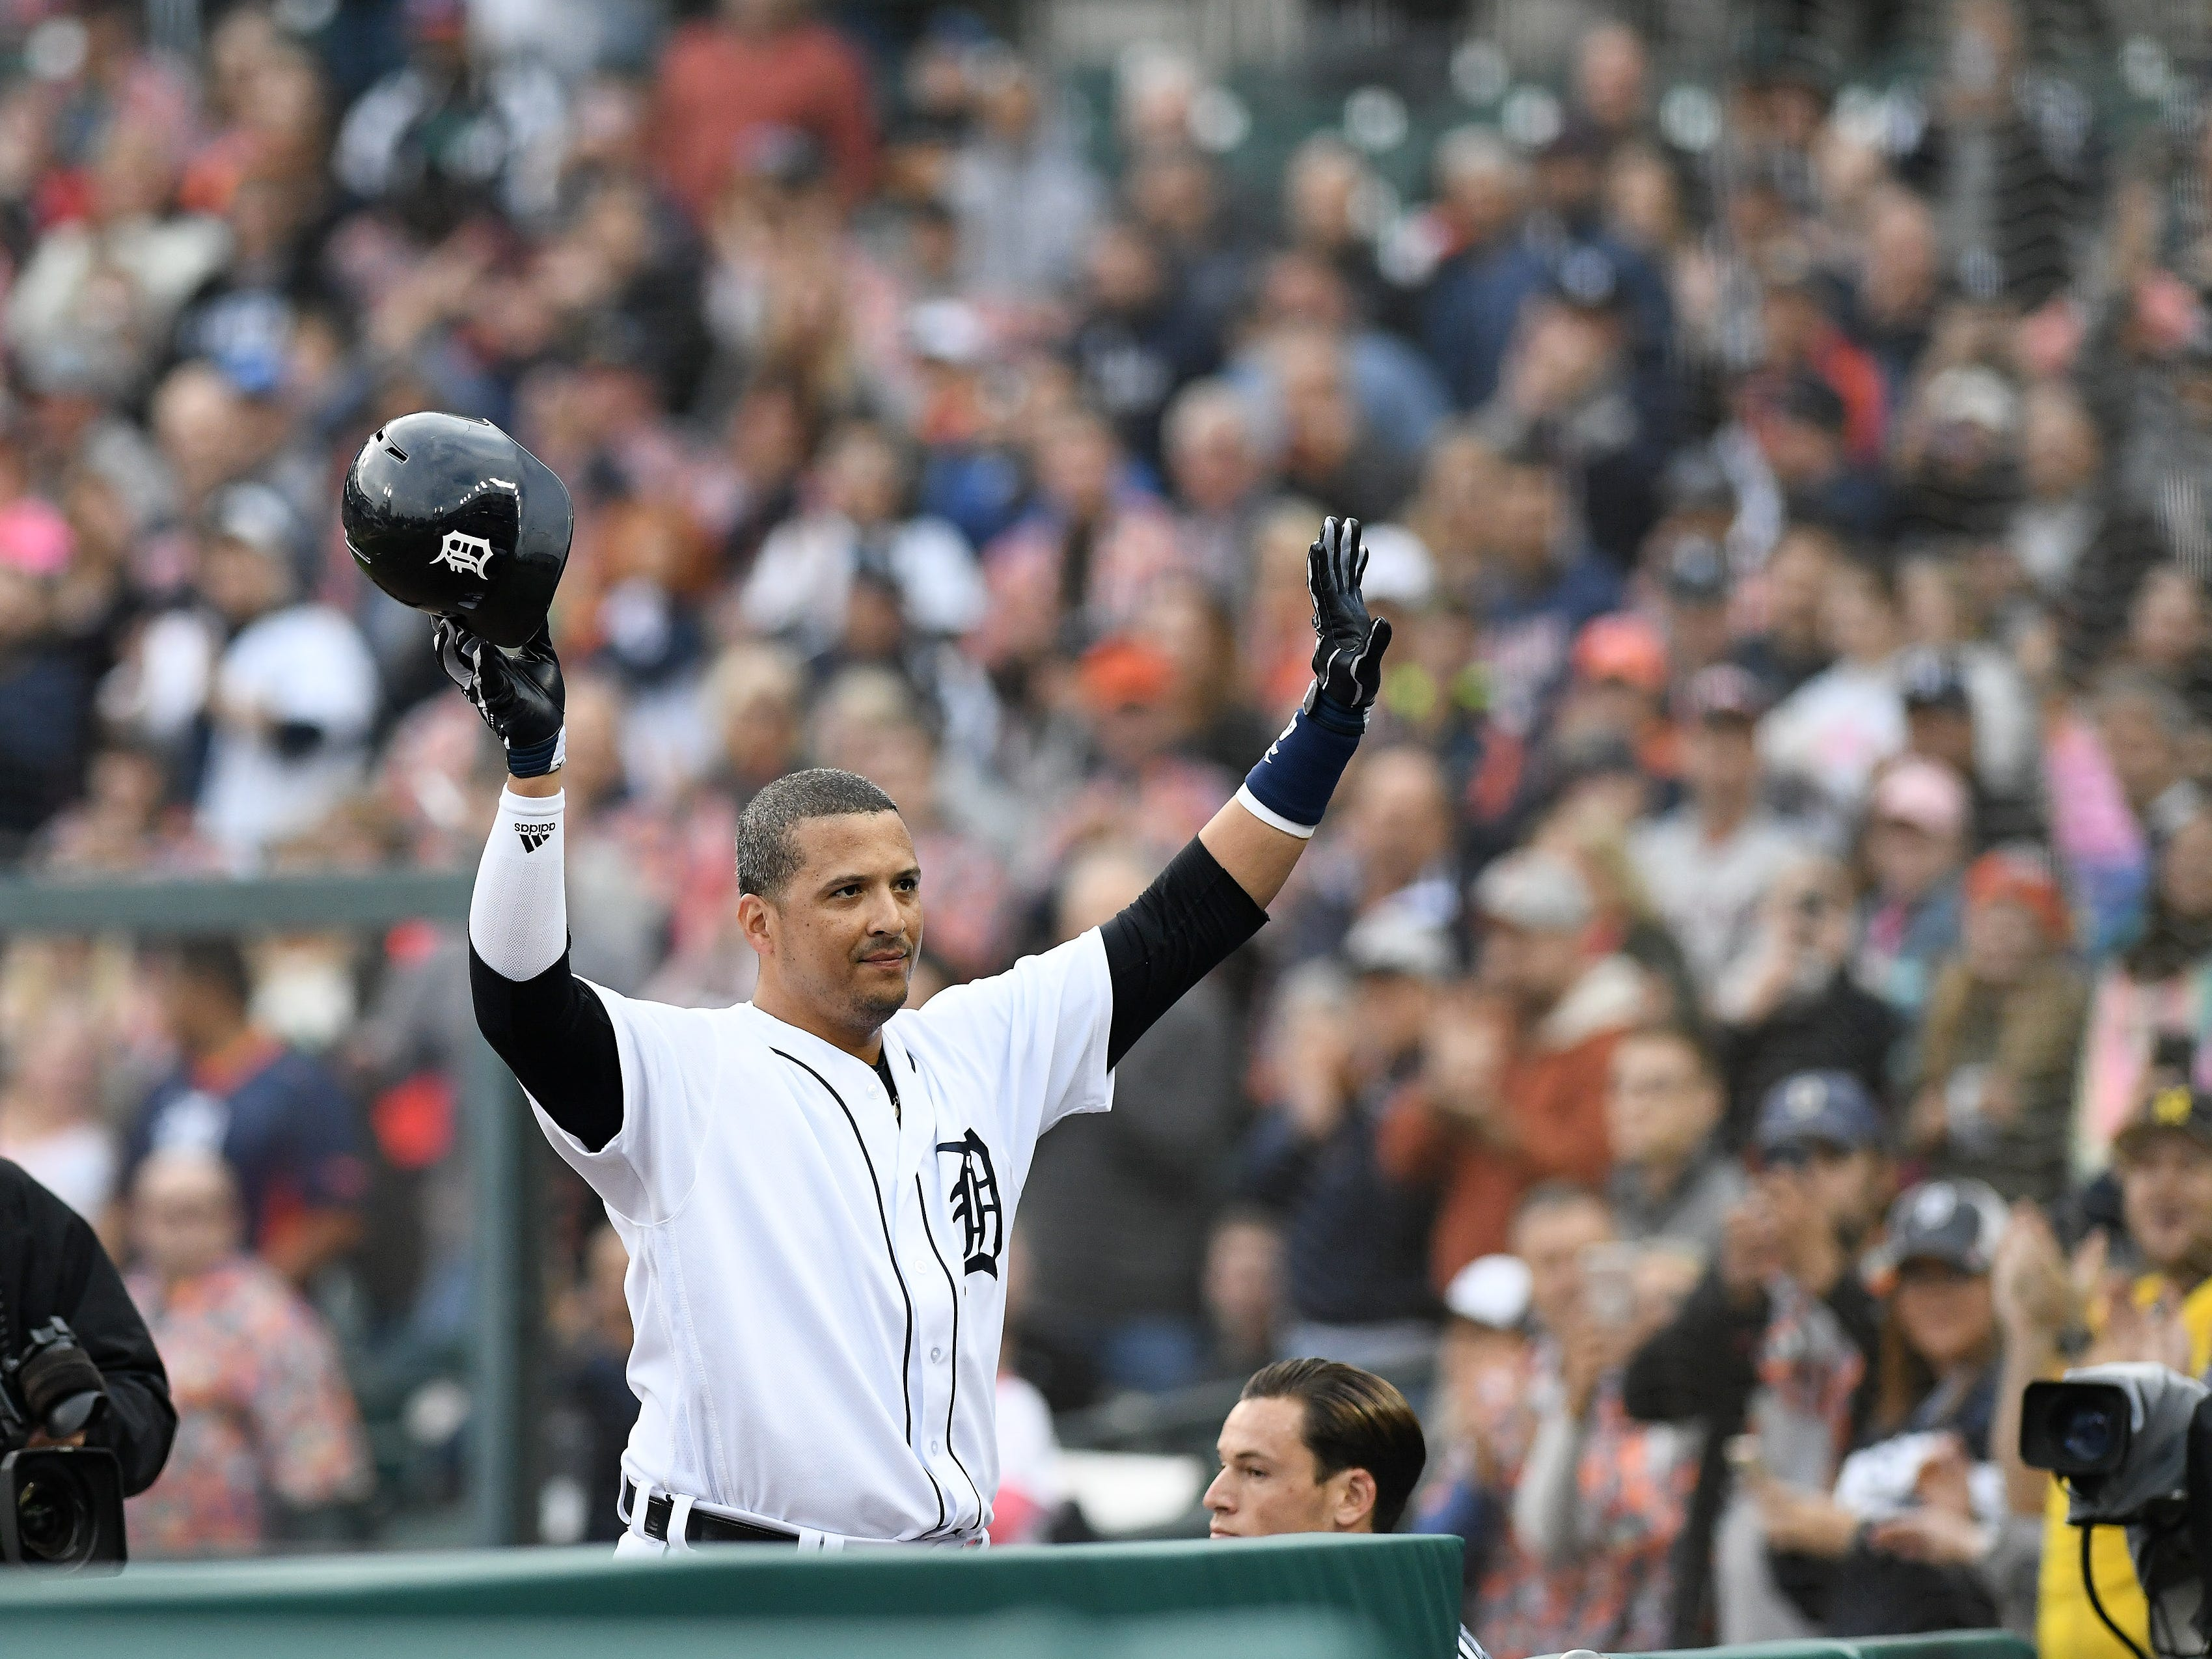 Tigers' Victor Martinez acknowledges the crowd as he comes out of the game after his final MLB hit.